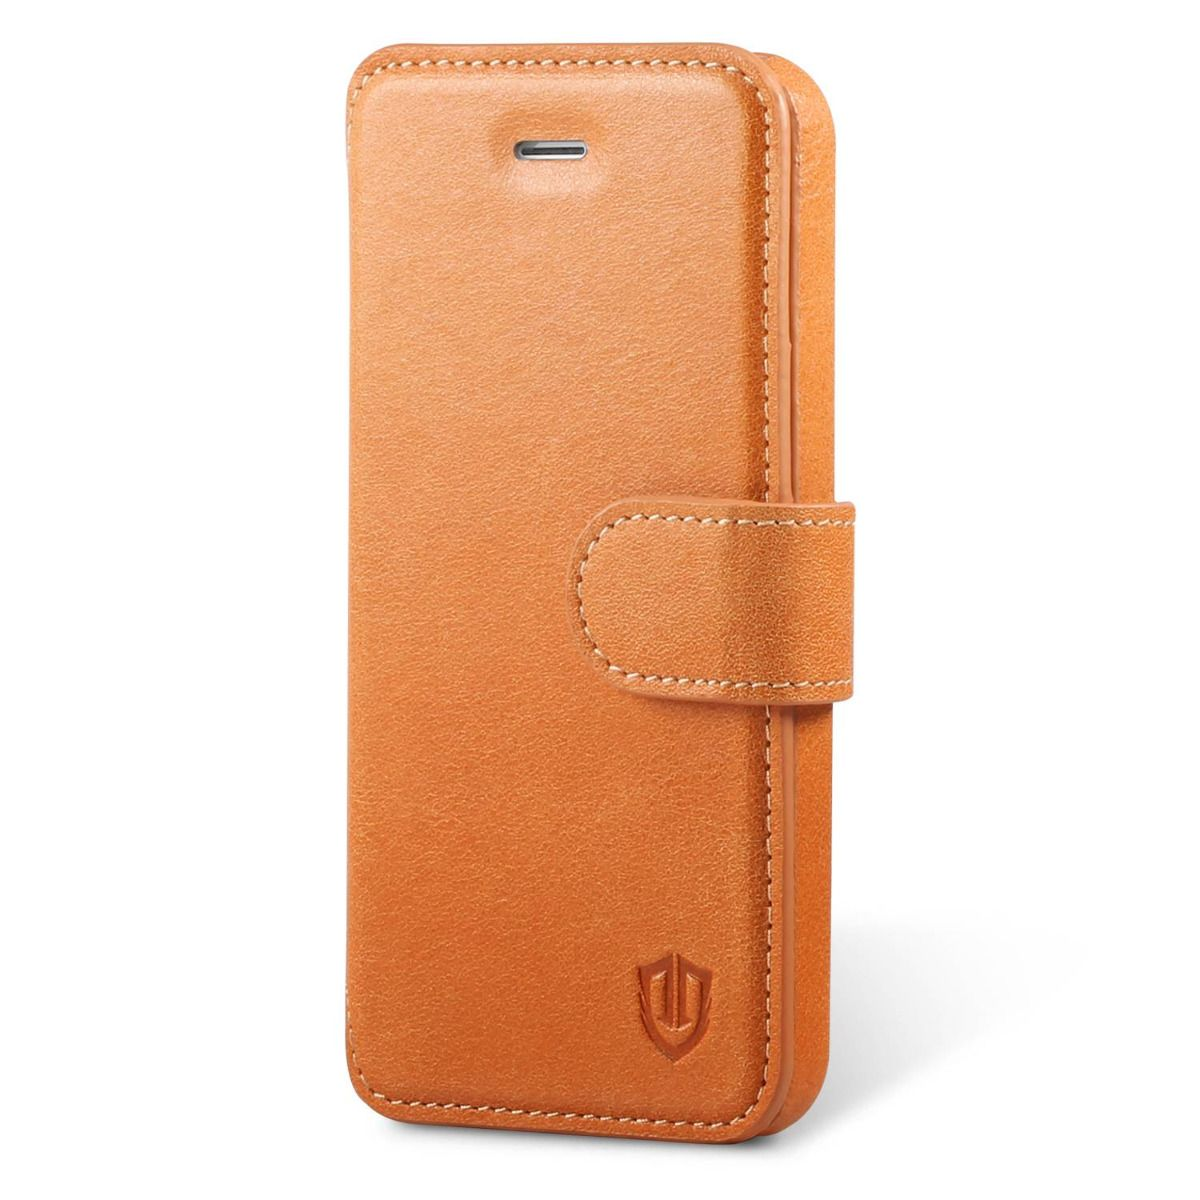 Shieldon iphone 5s leather folio cover genuine wallet phone case - Iphone 5s leather case ...